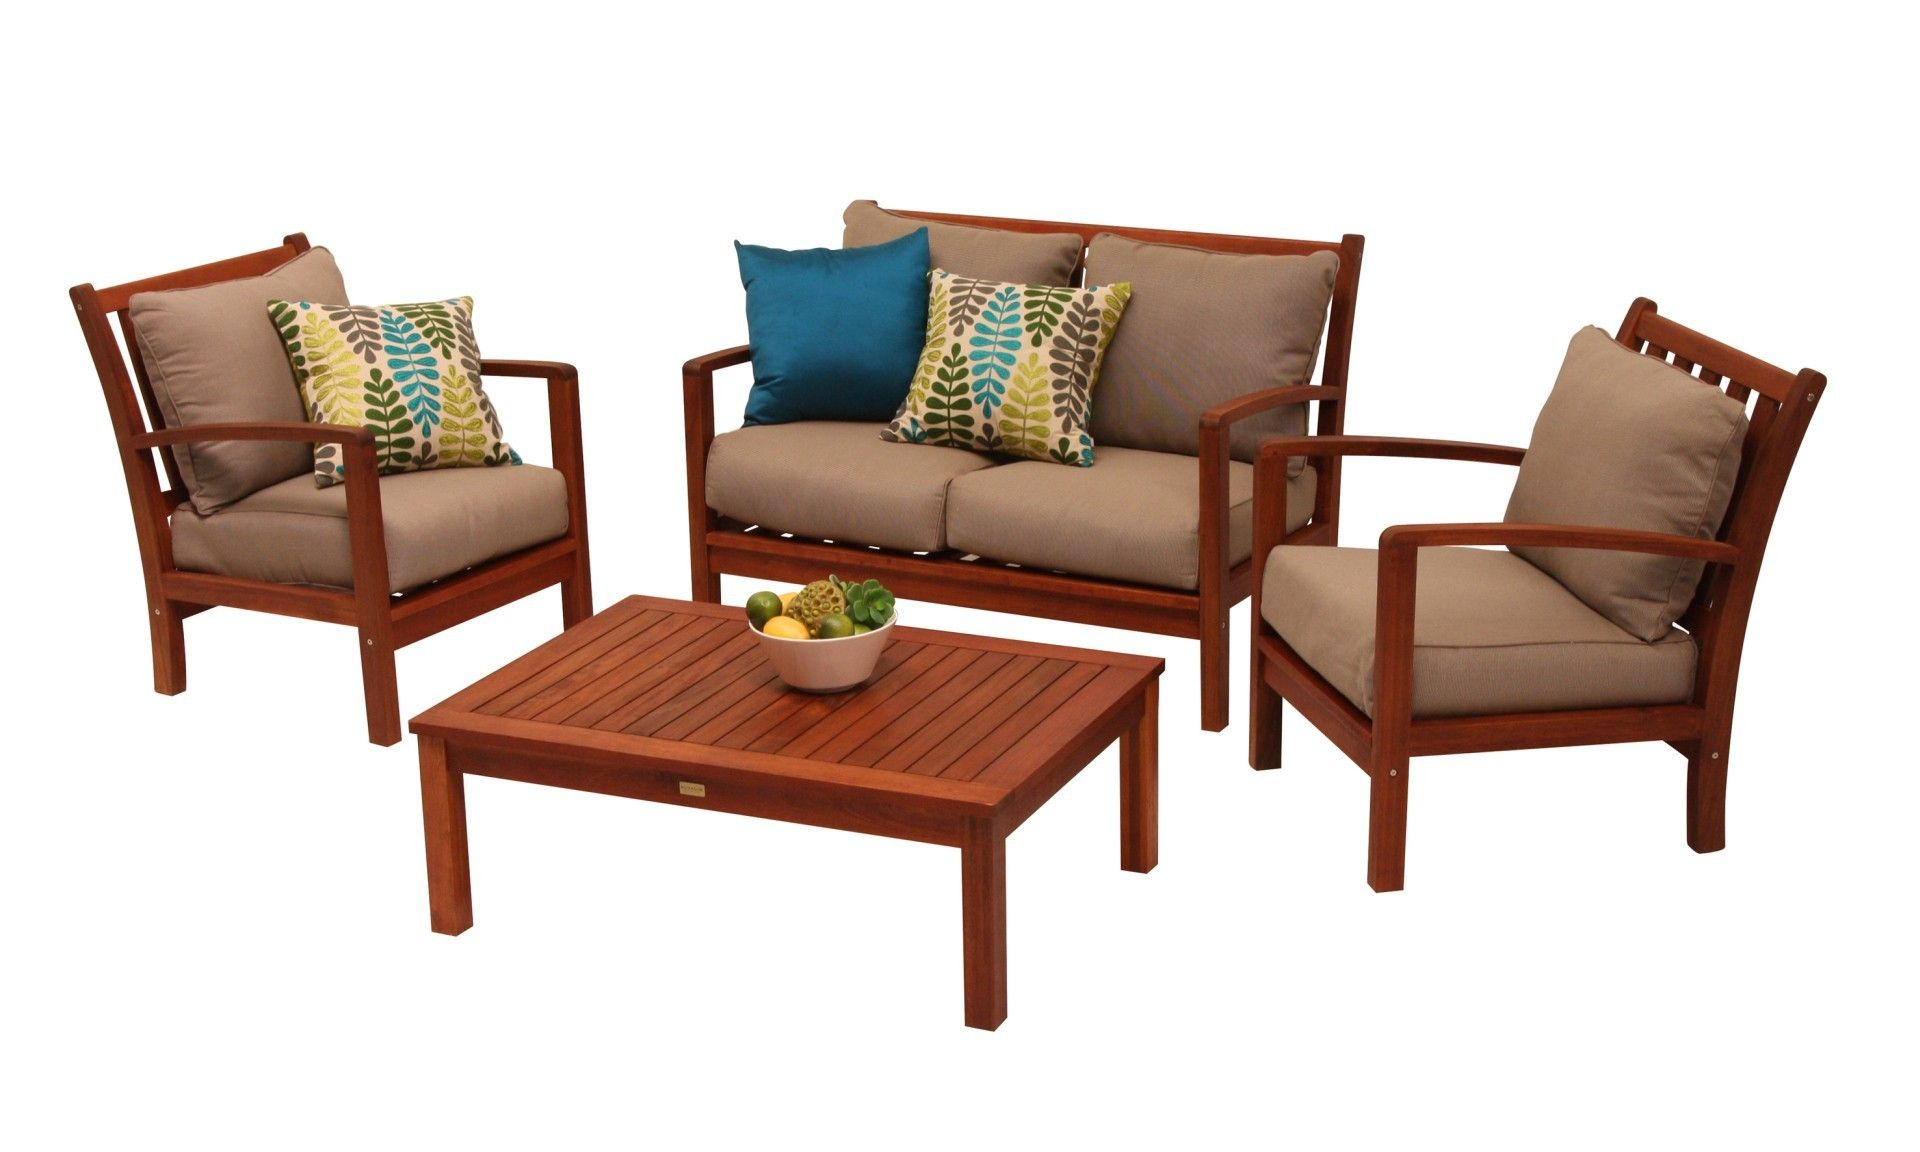 Teak Outdoor Sofa With PC A Grade Teak Wood Outdoor Teakwood Patio